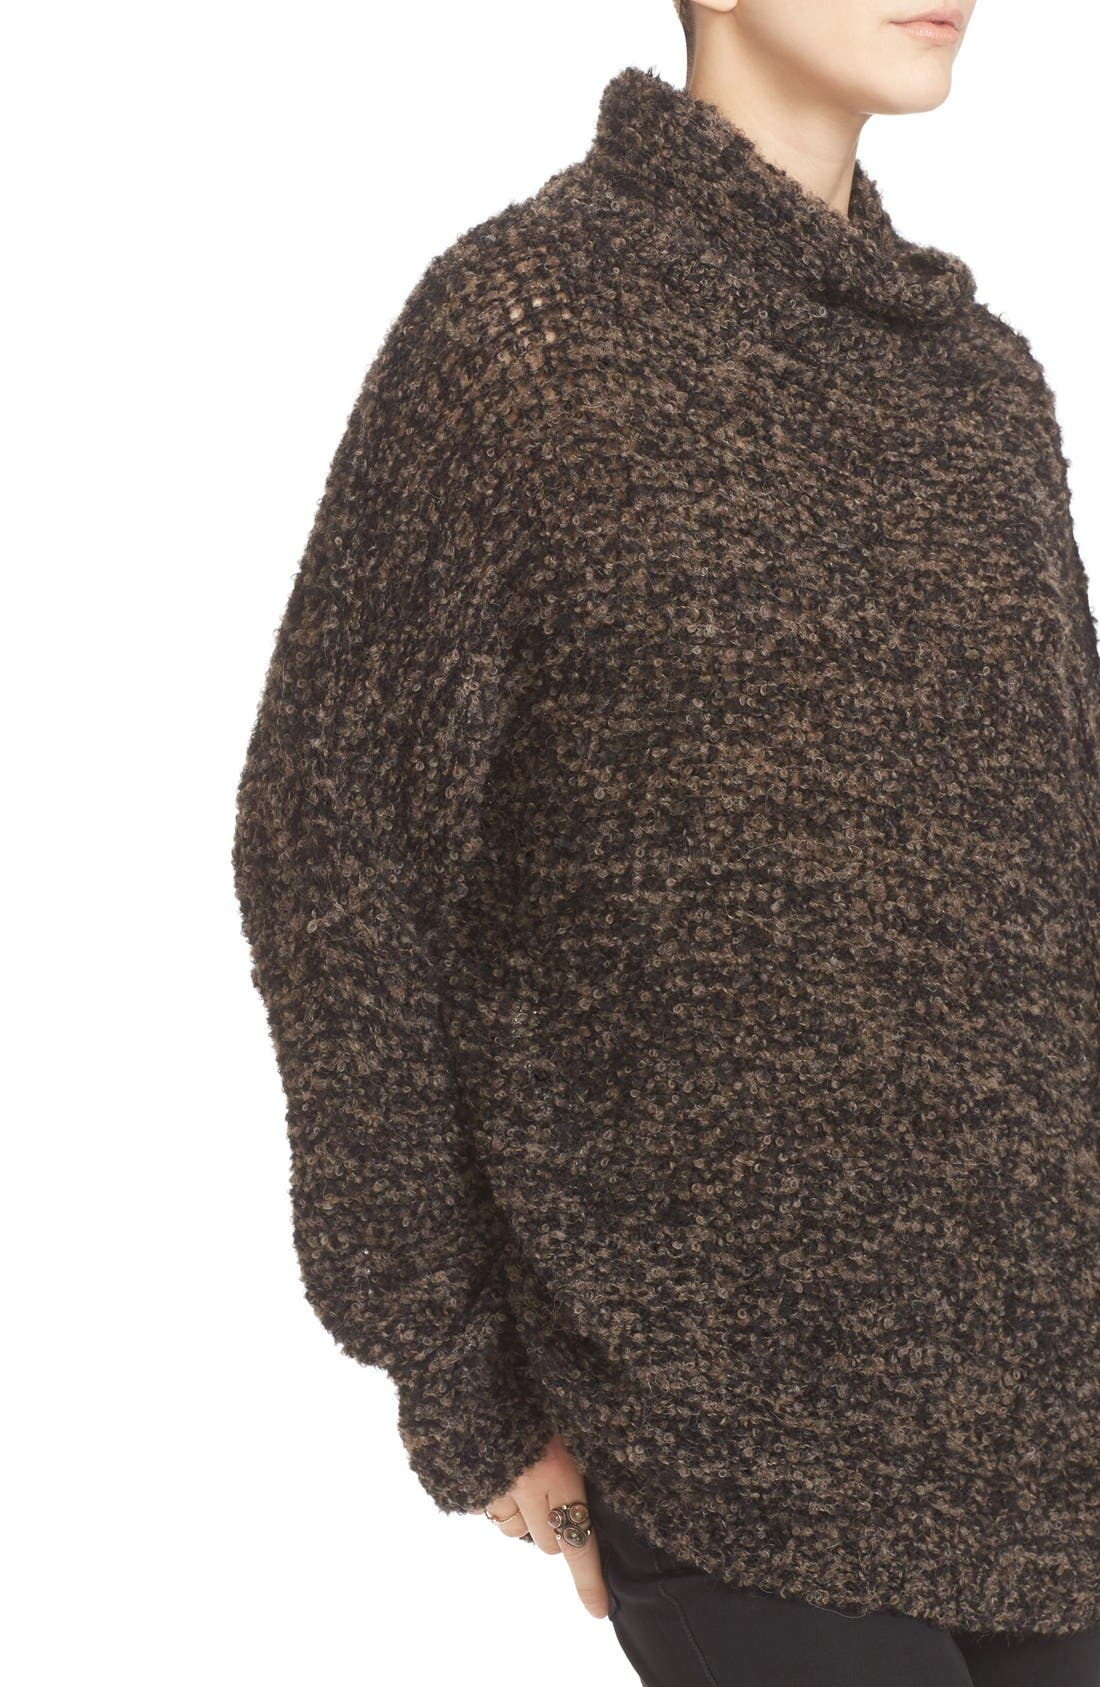 'She's All That' Knit Turtleneck Sweater,                             Alternate thumbnail 12, color,